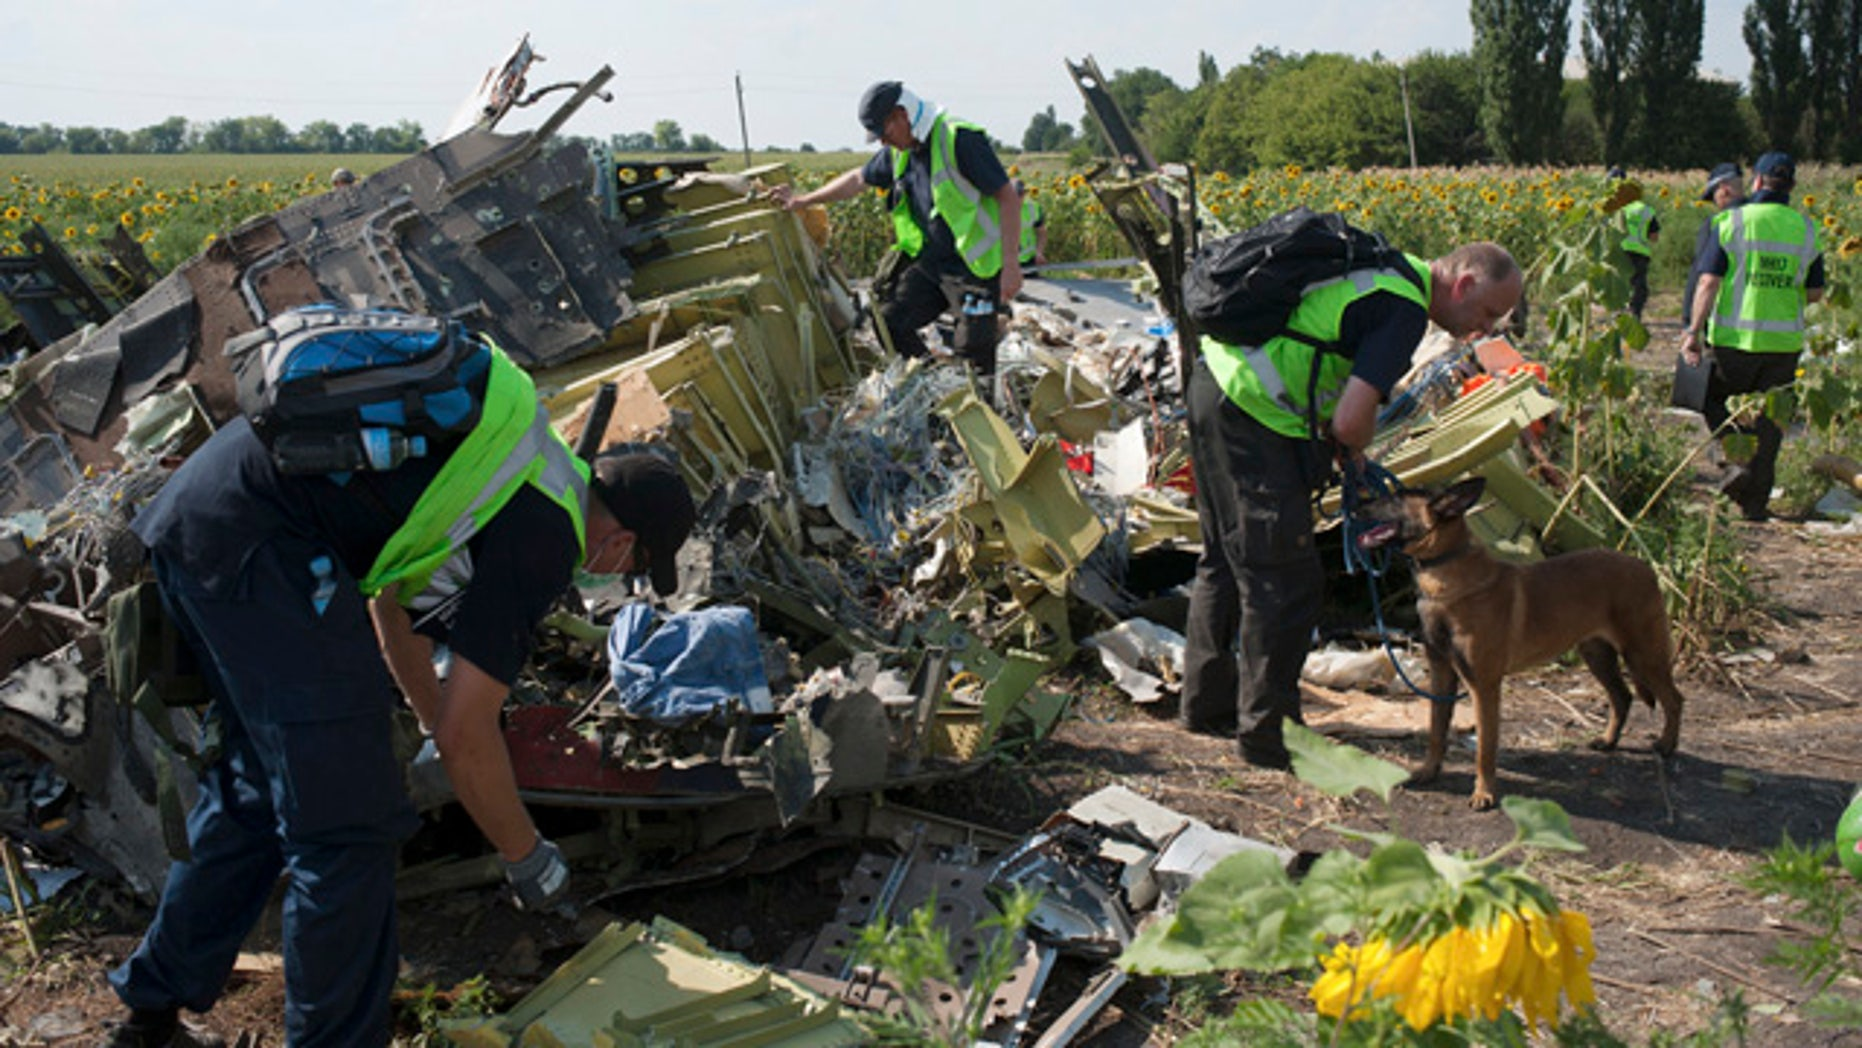 FILE - In this Tuesday, Aug. 5, 2014 file photo,  Australian, Malaysian and Dutch investigators examine pieces of the downed Malaysia Airlines Flight 17 plane, near the village of Rossipne, Donetsk region, eastern Ukraine. (AP Photo/File)